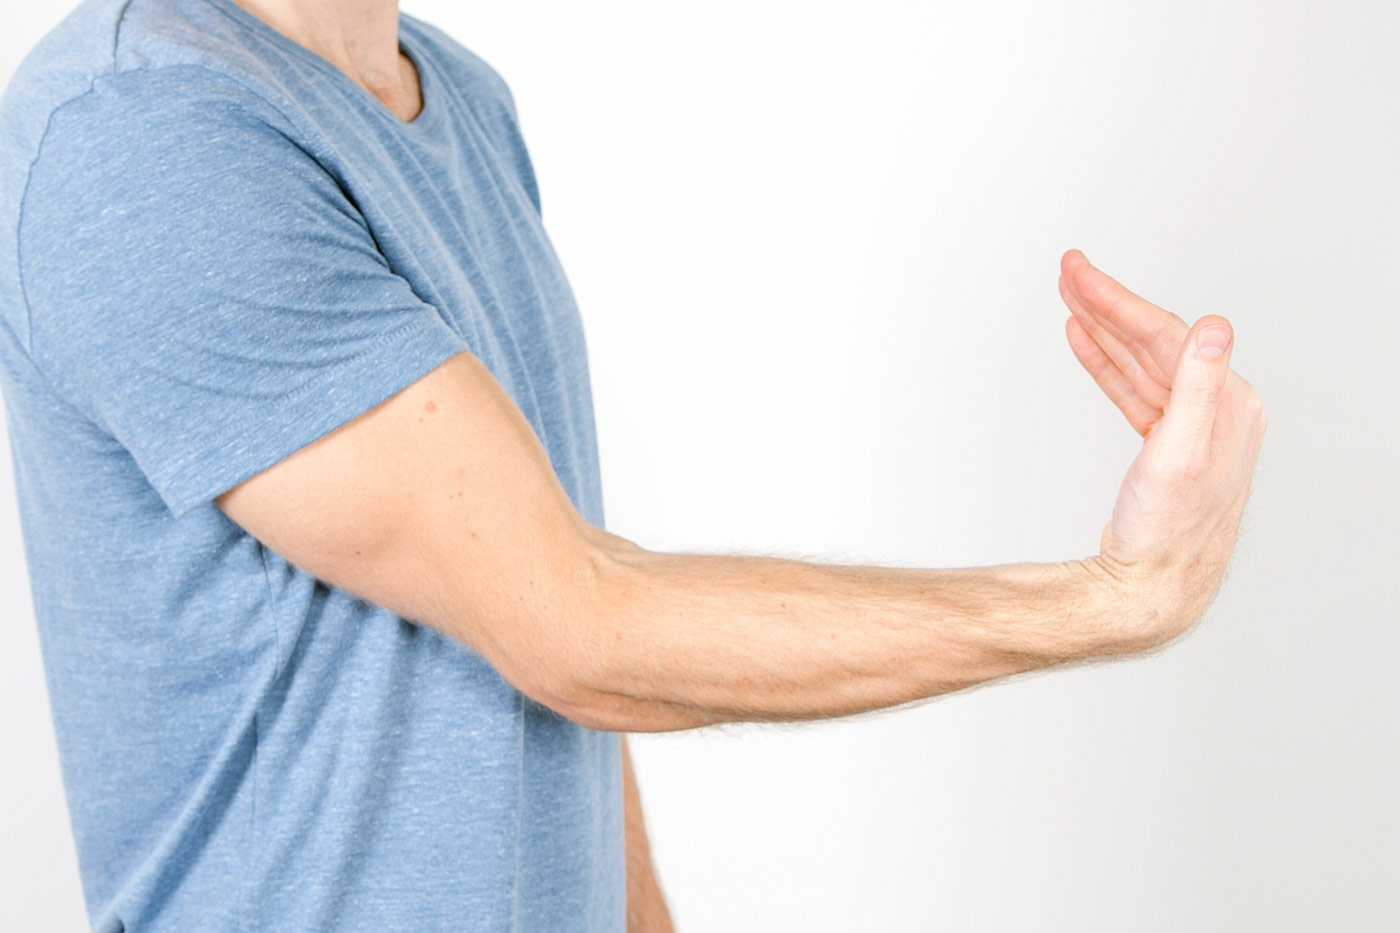 Check for golfers elbow